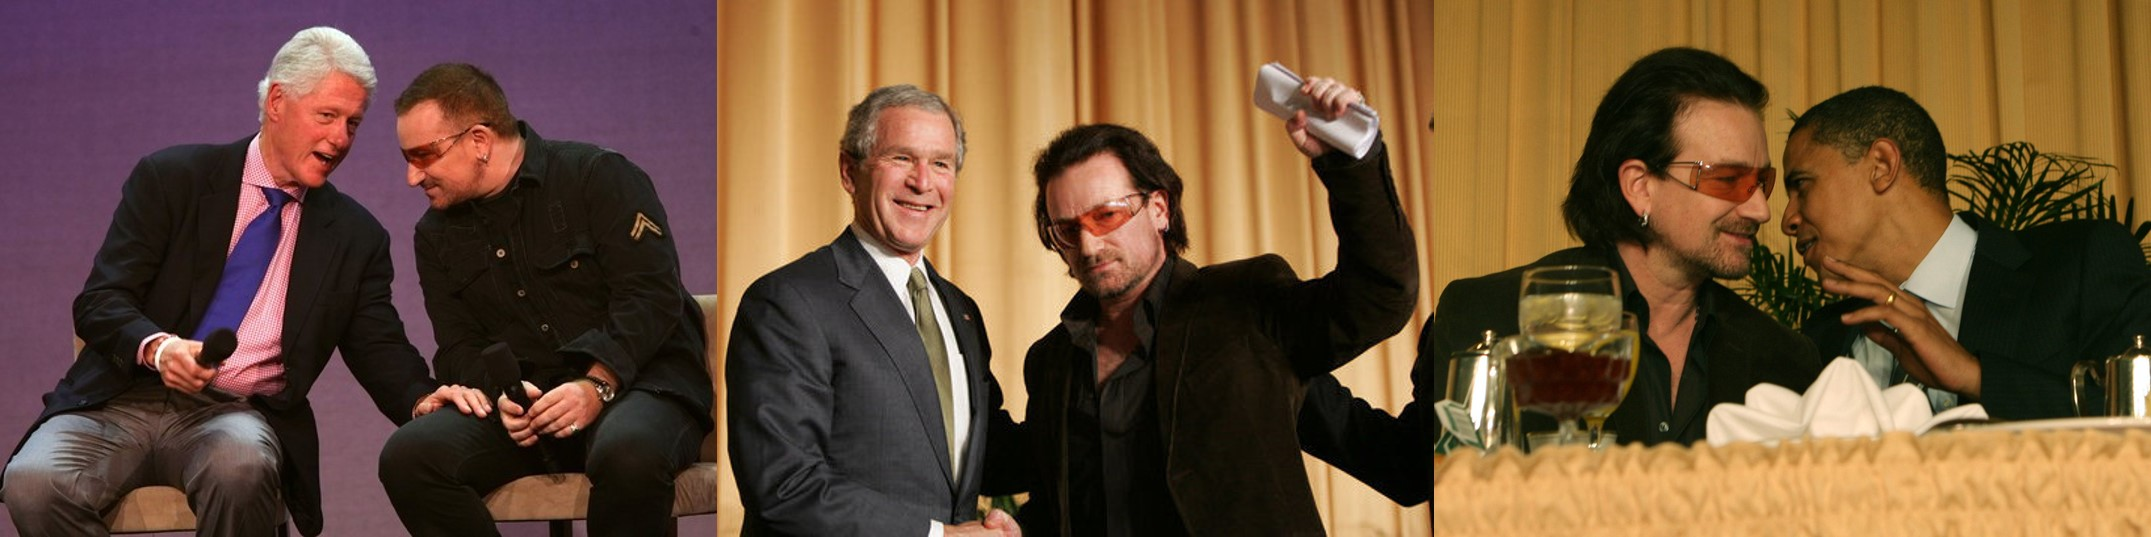 Bono and presidents.jpg